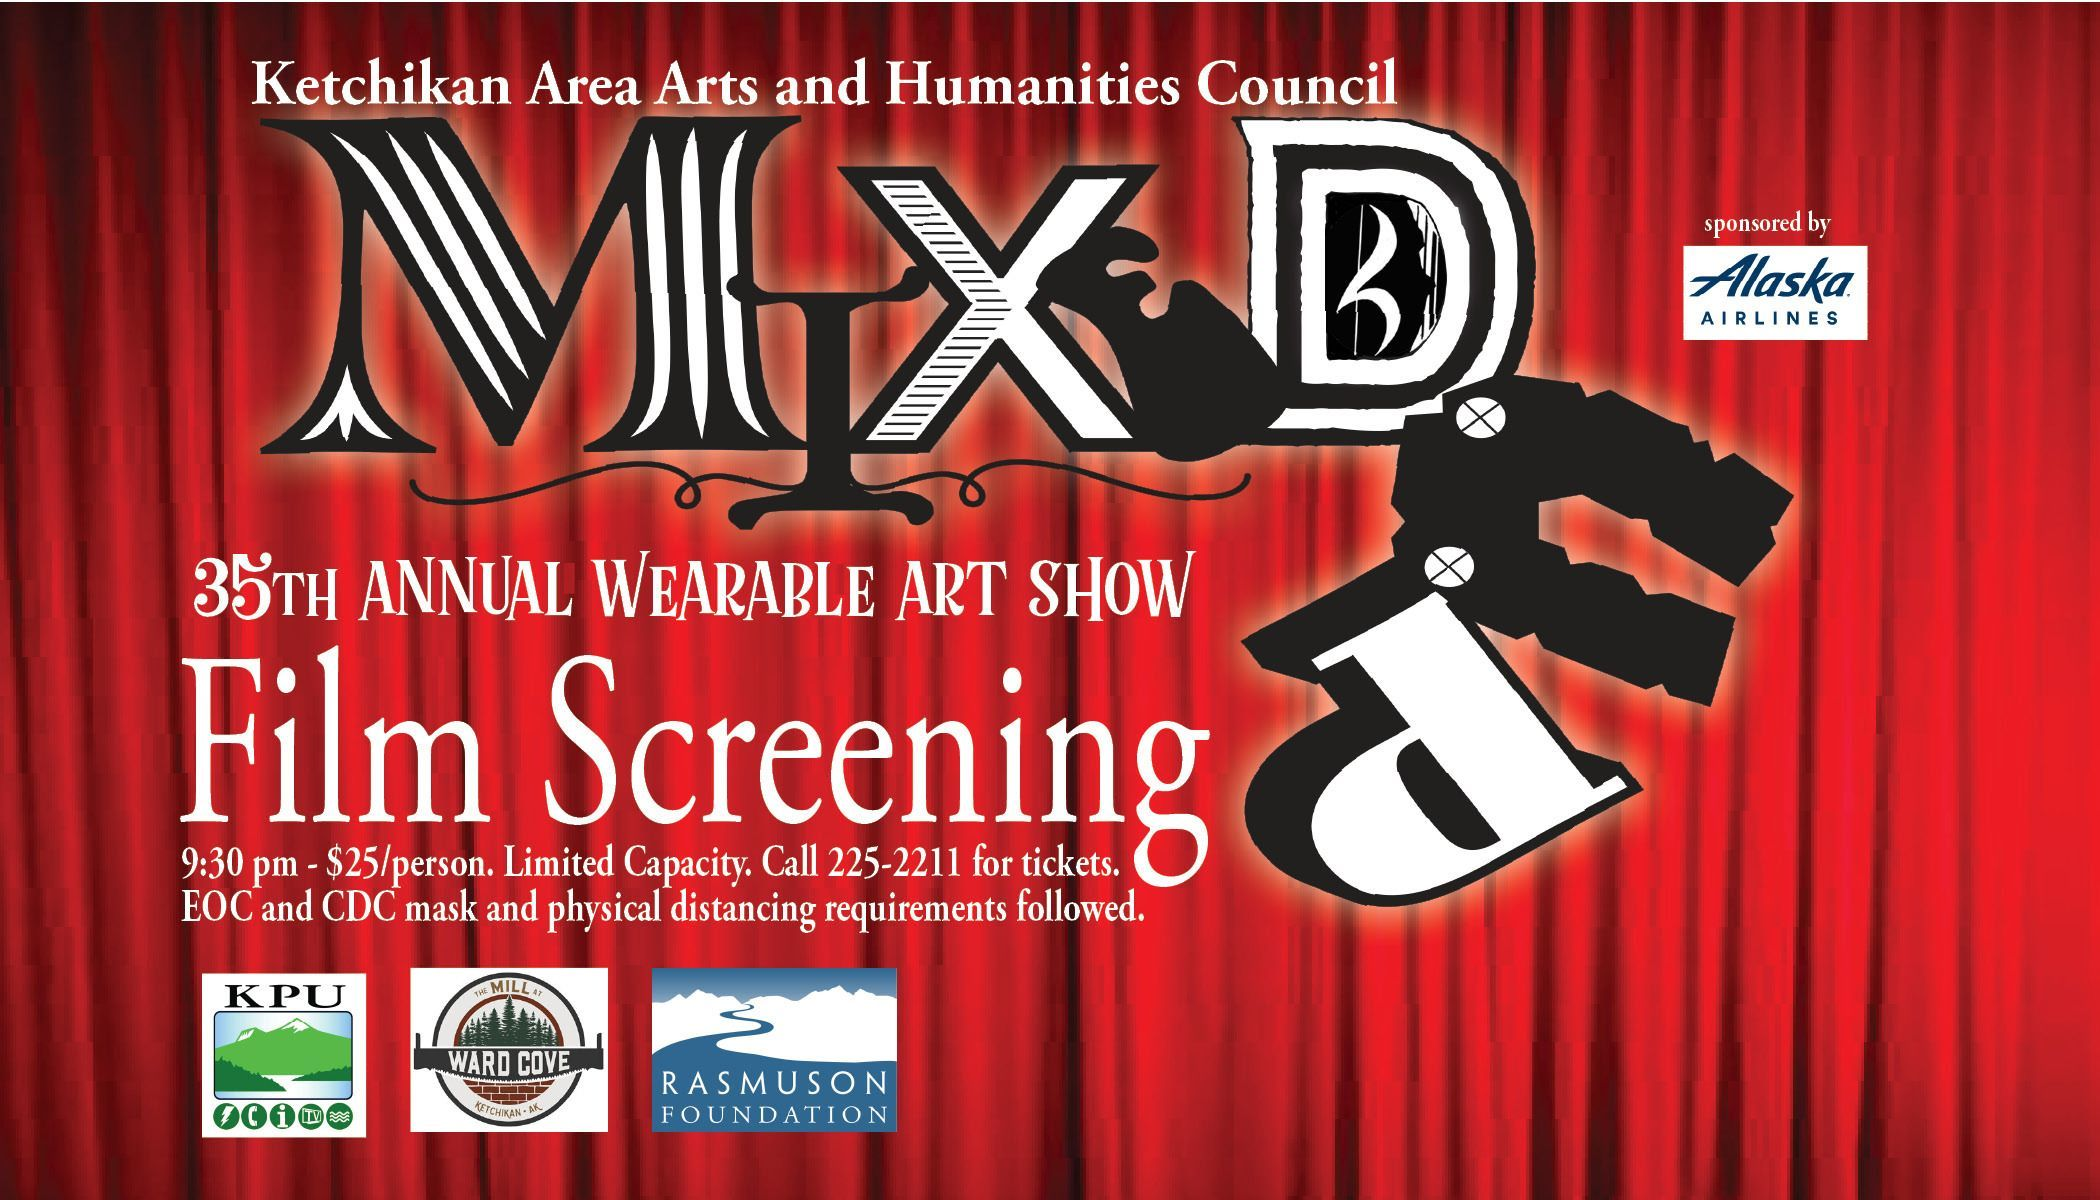 """Mixed Up"" the 35th Annual Wearable Art Show Film Screening"